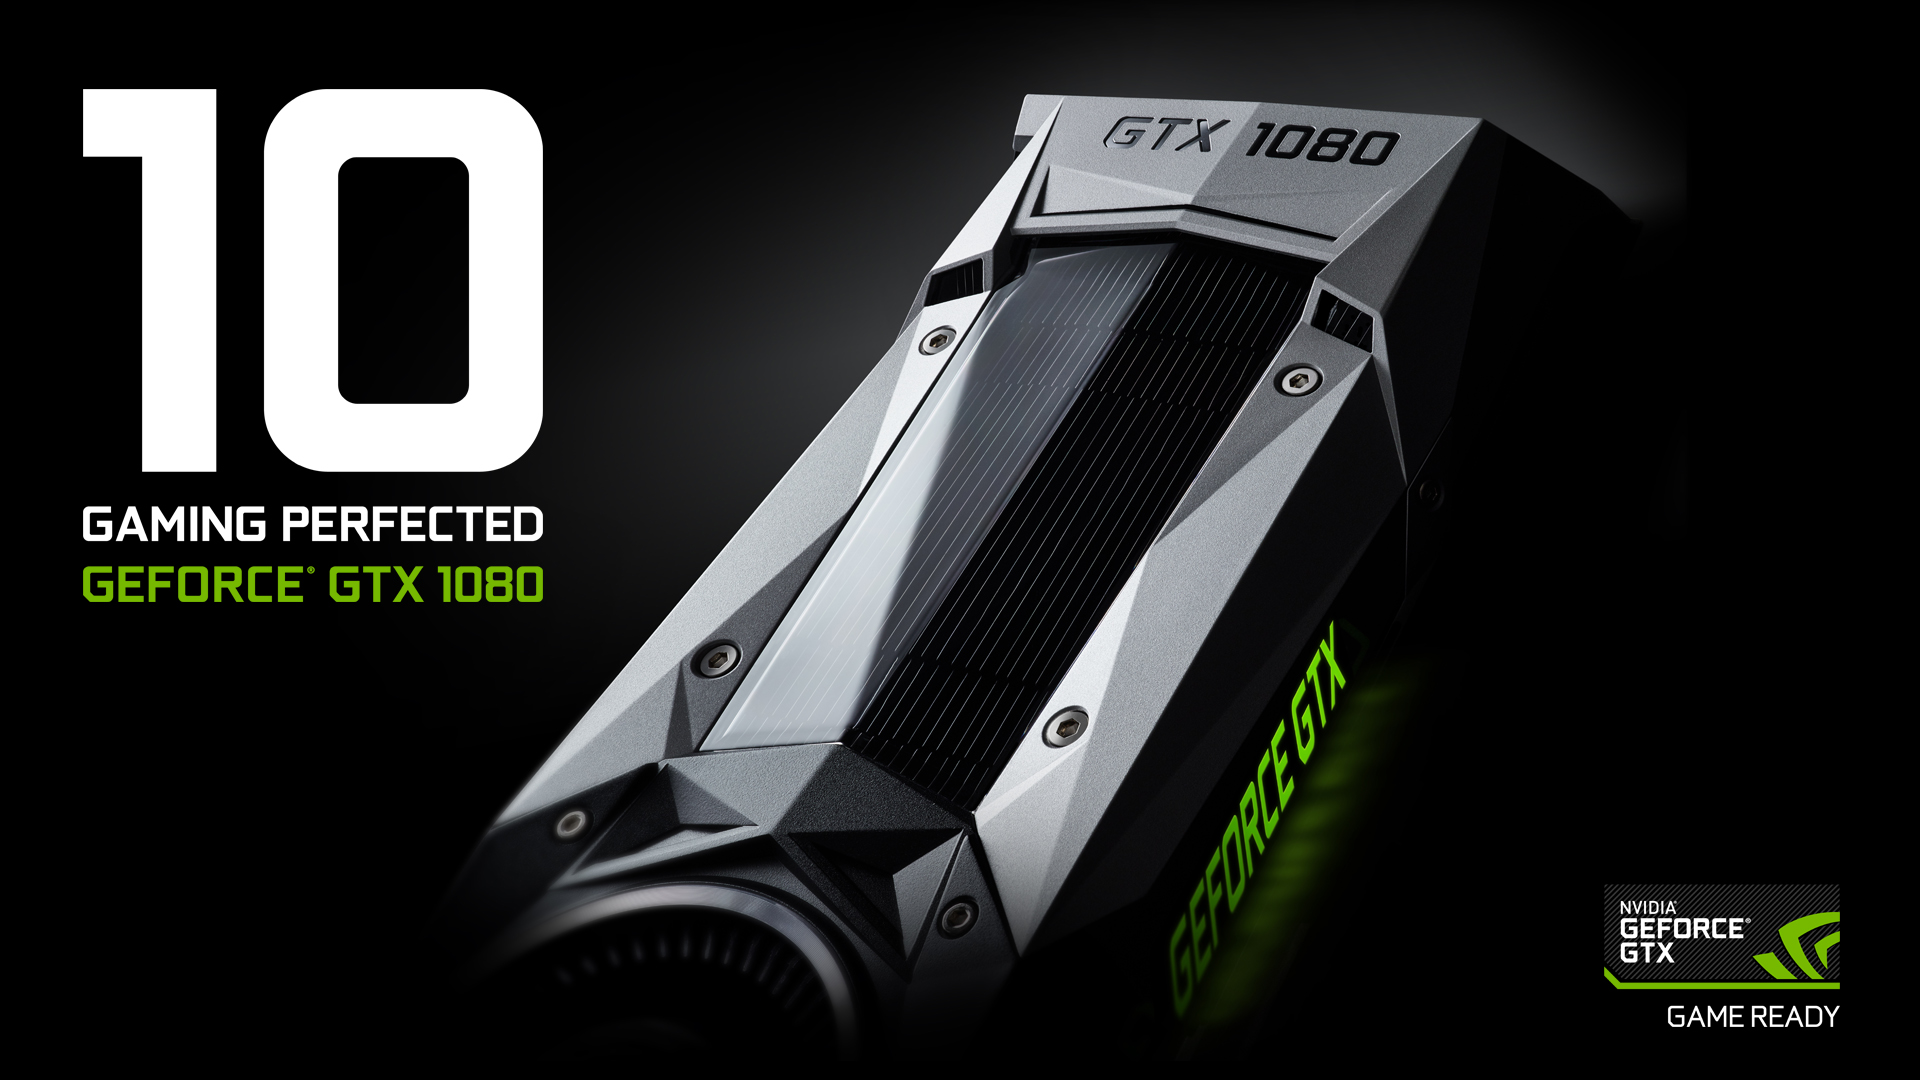 GeForce GTX 1080 Graphics Card: Gaming Perfected.